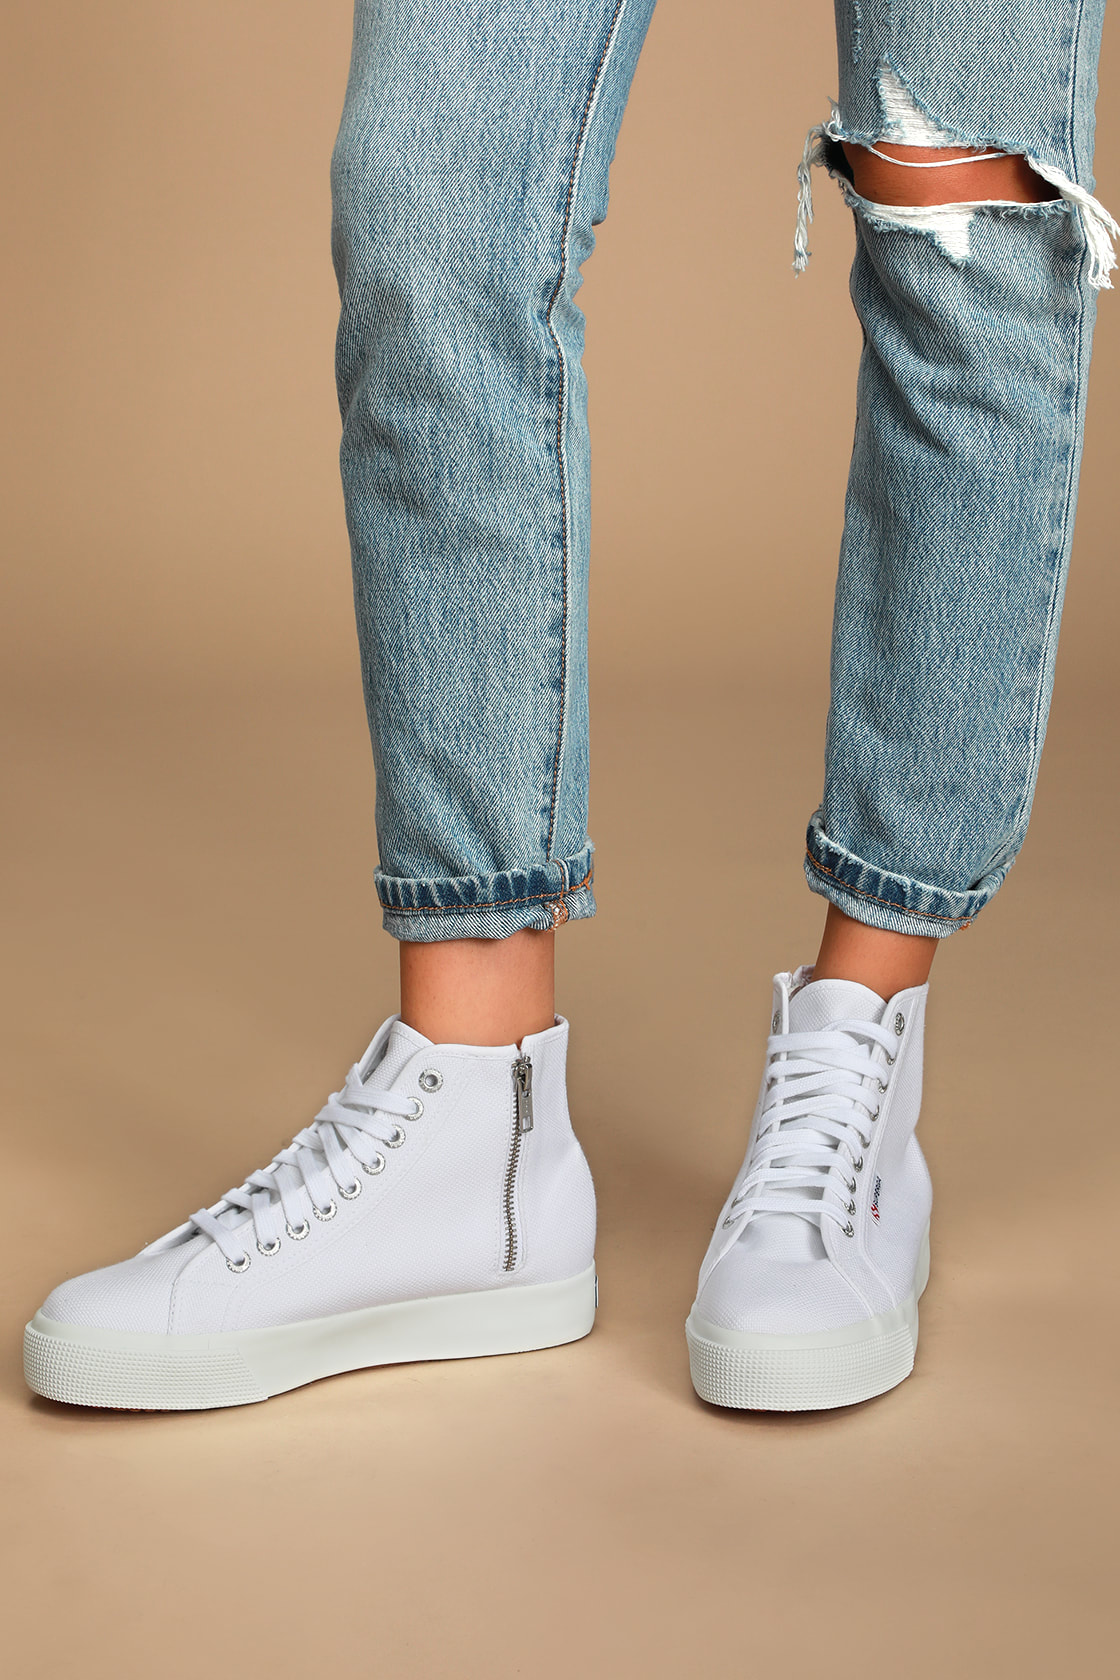 2422 Cotw White High Top Platform Sneakers by Superga